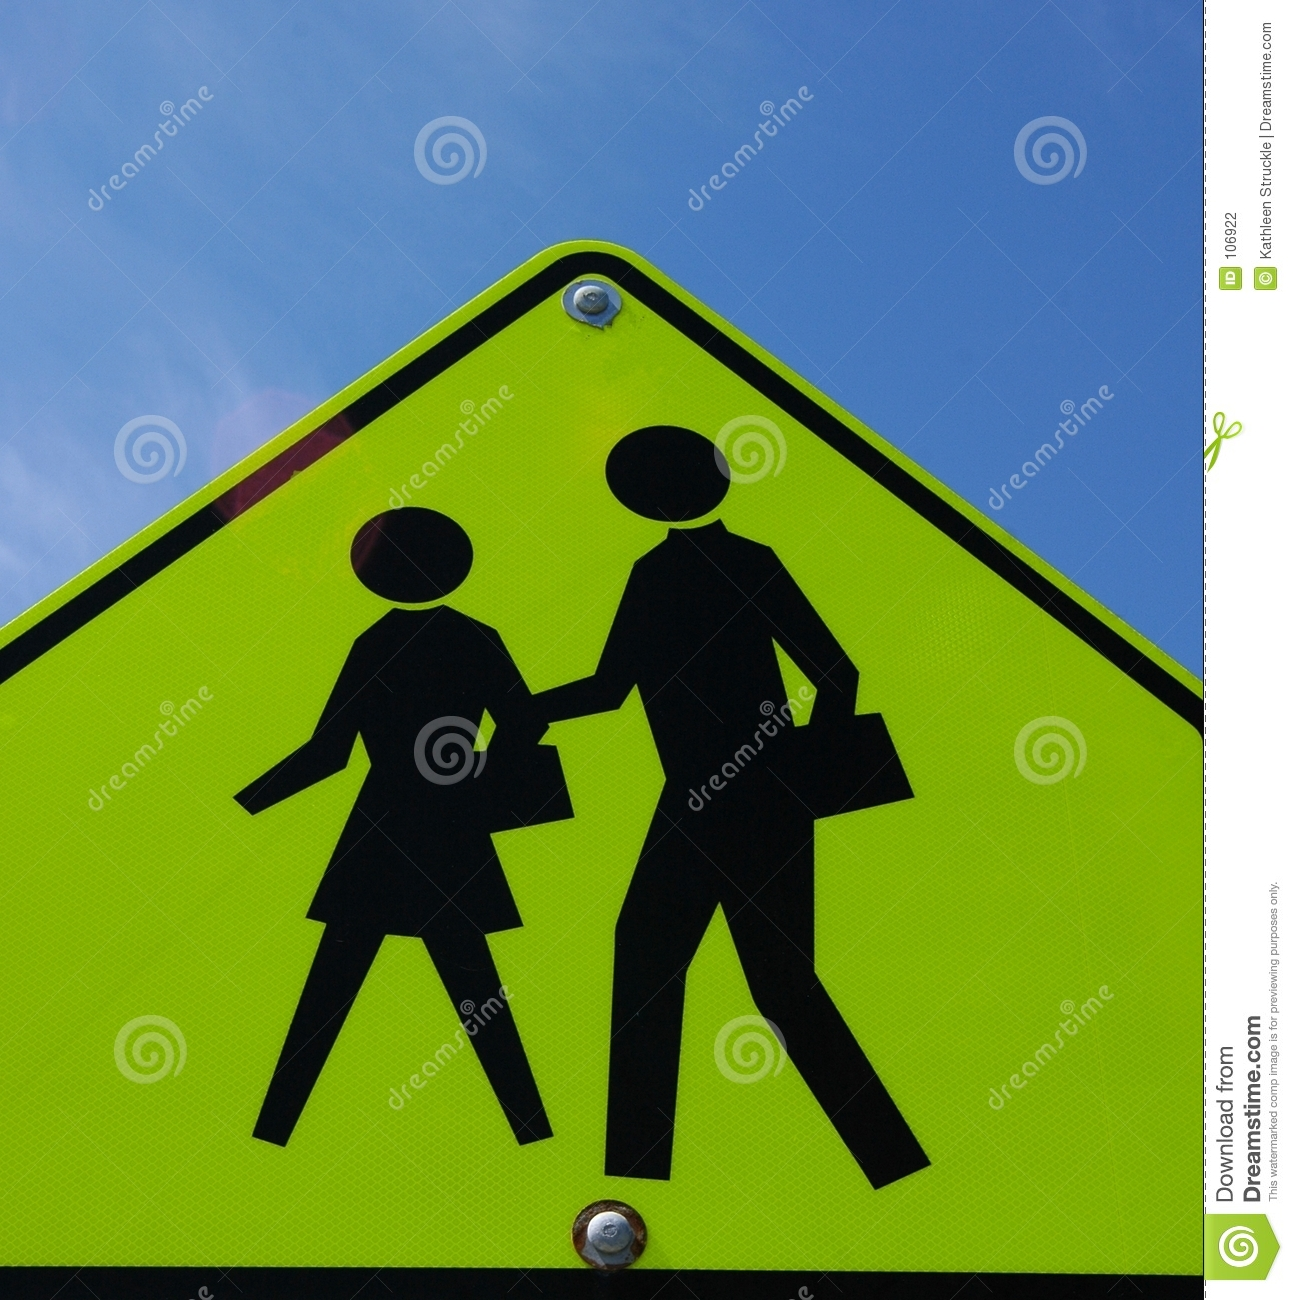 People Crossing Sign